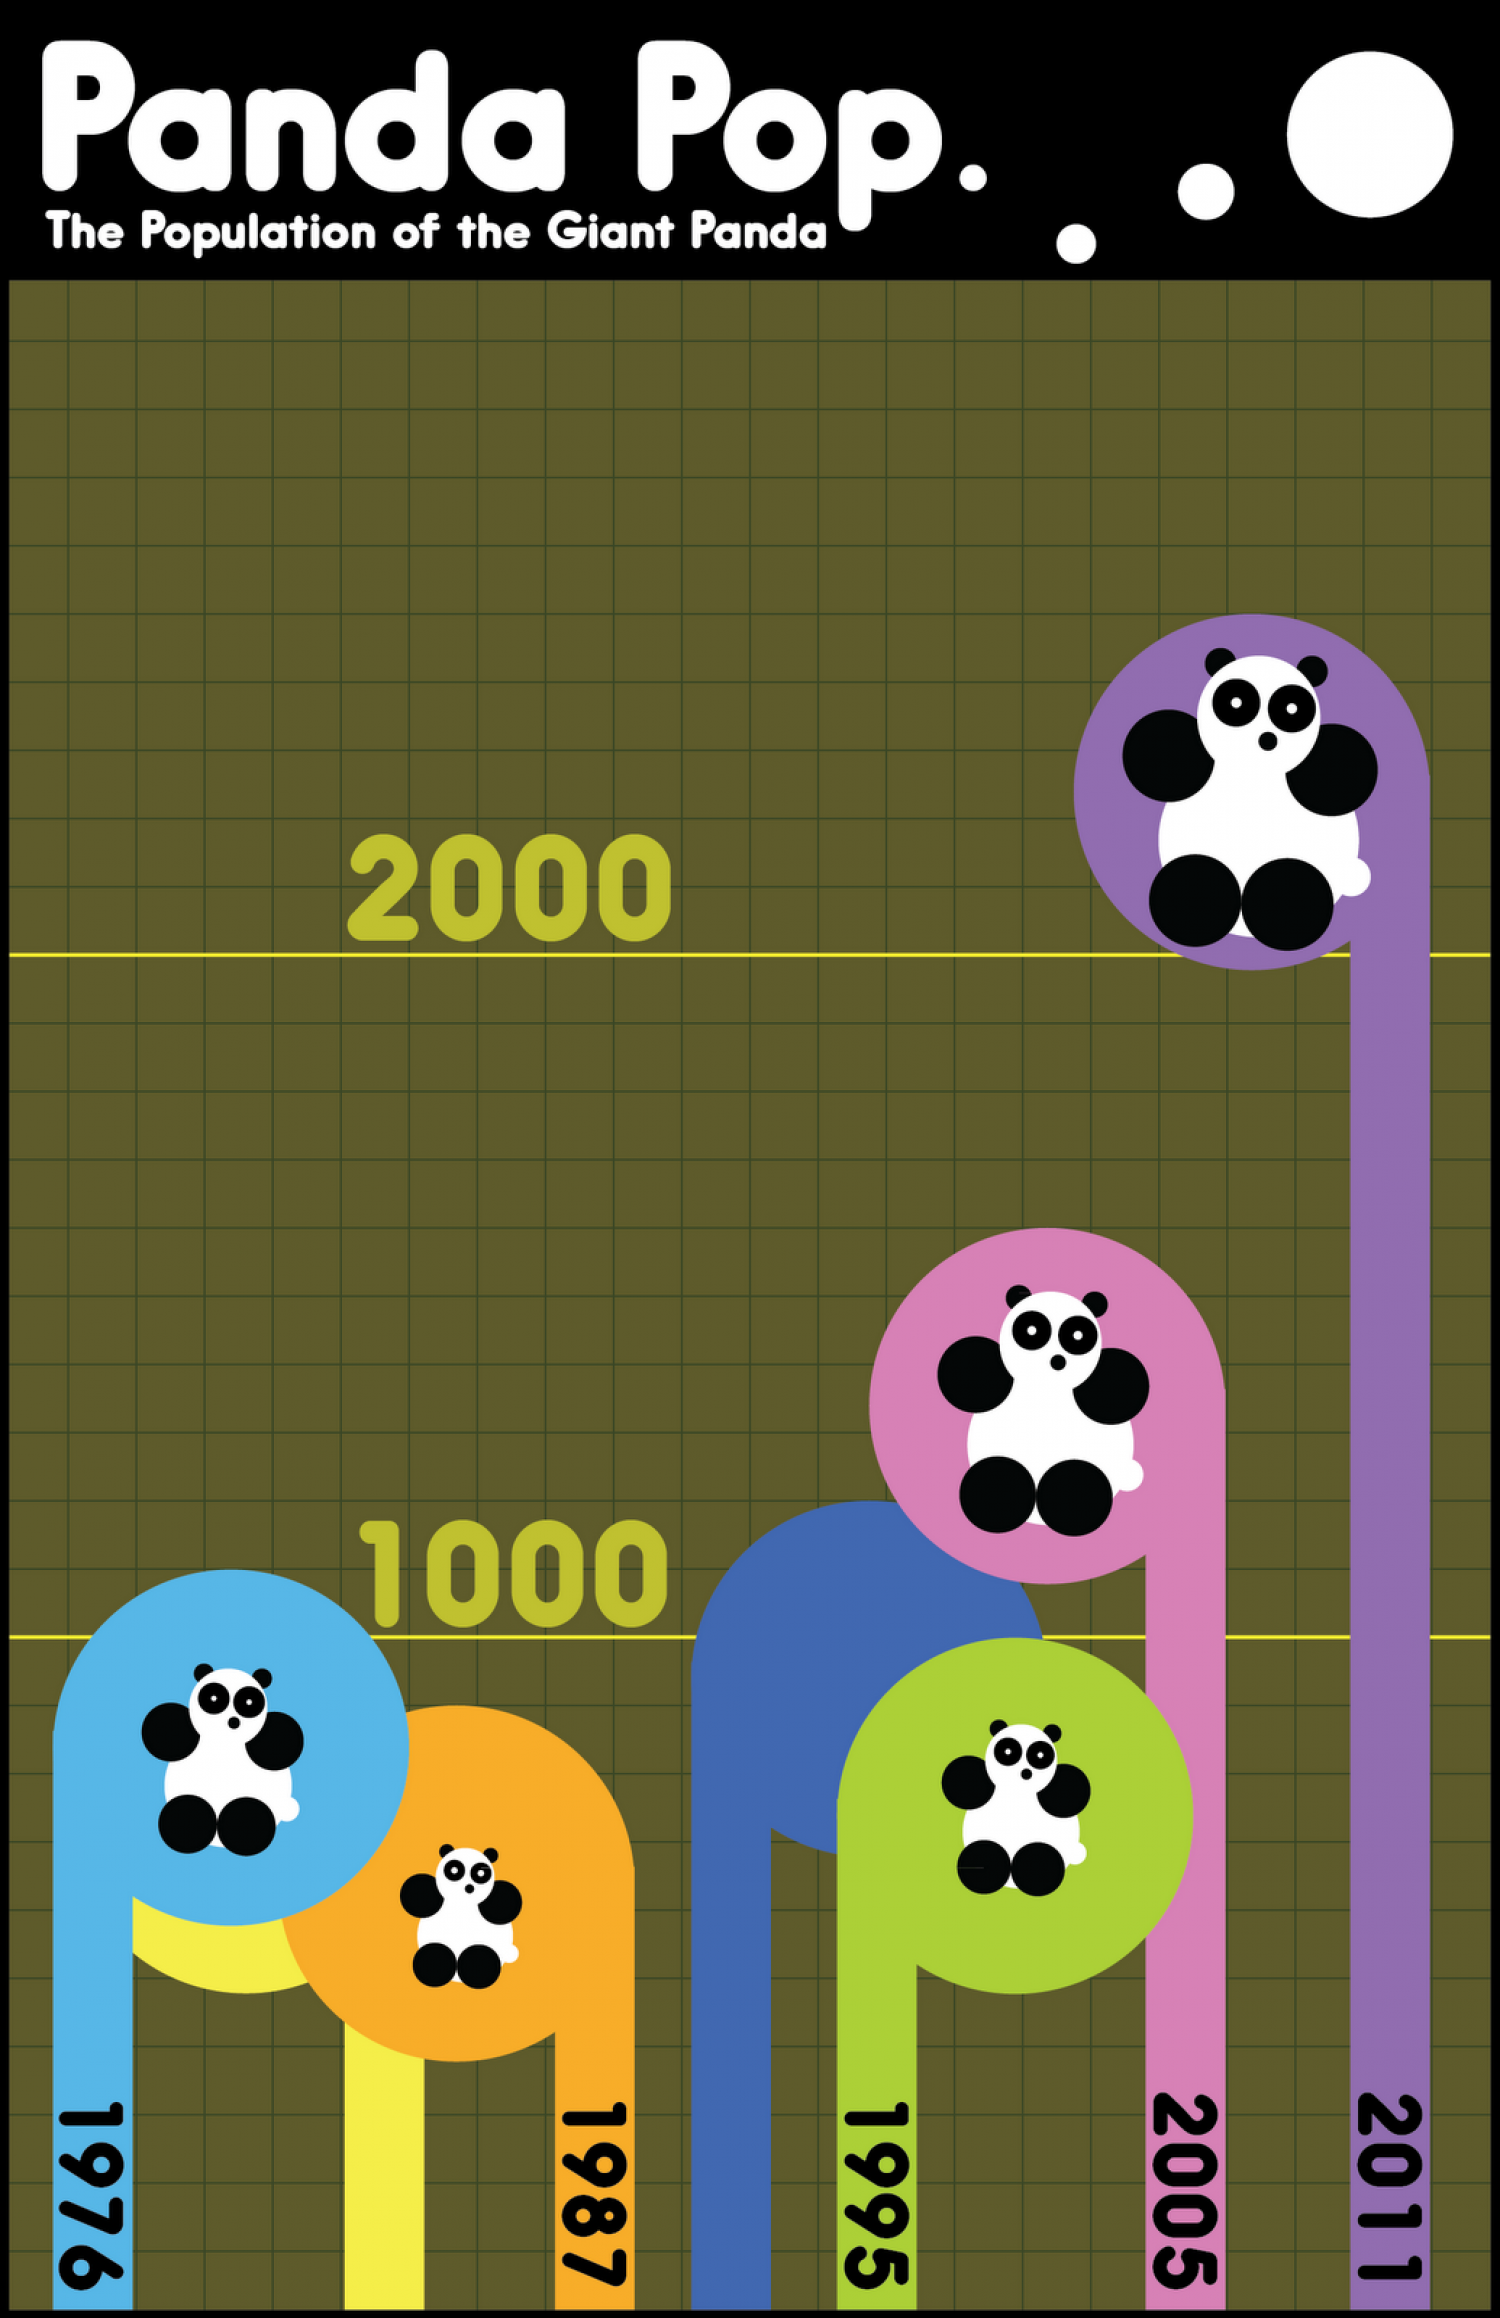 Giant Panda Population Infographic